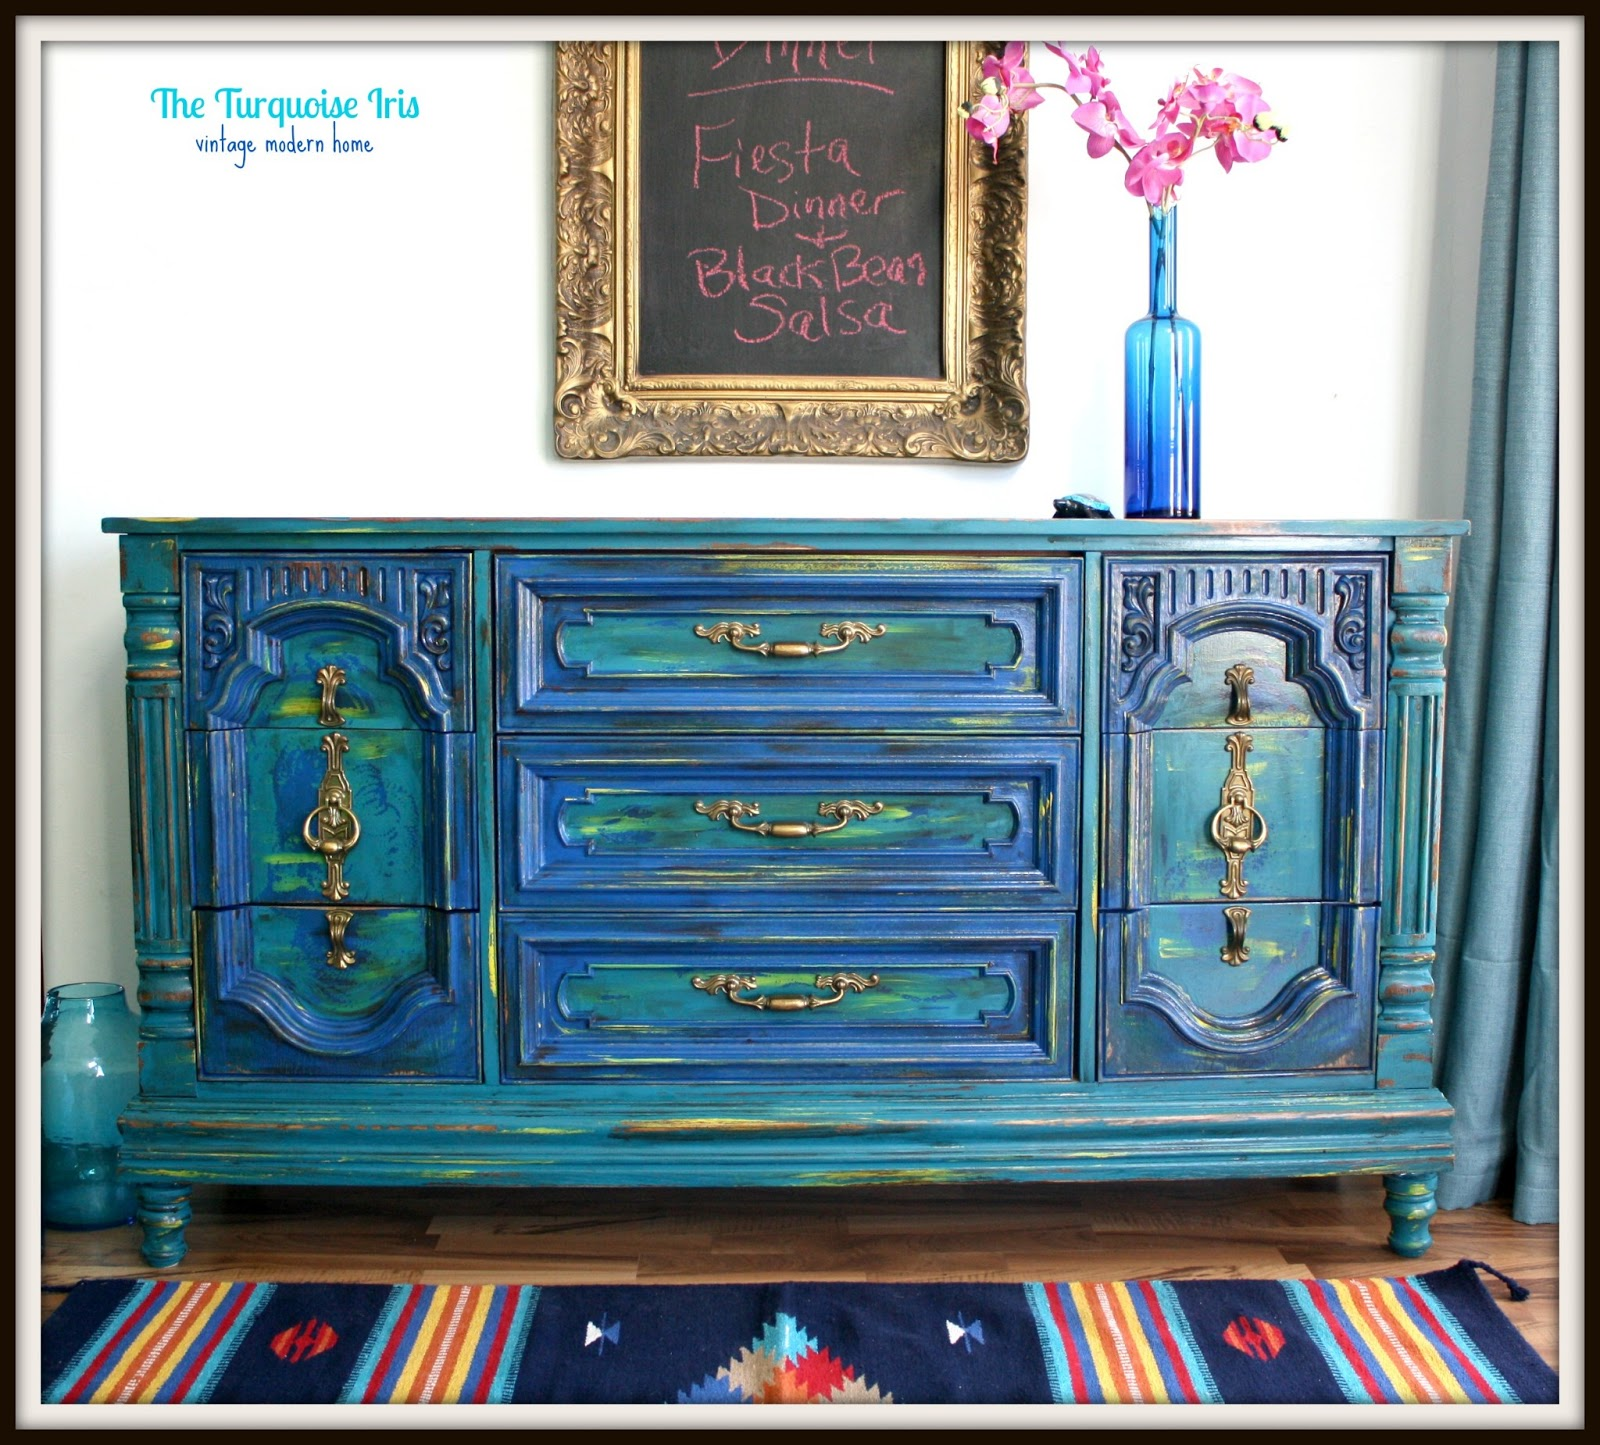 The Turquoise Iris Furniture Art Teal And Cobalt Blue Distressed Dresser Buffet